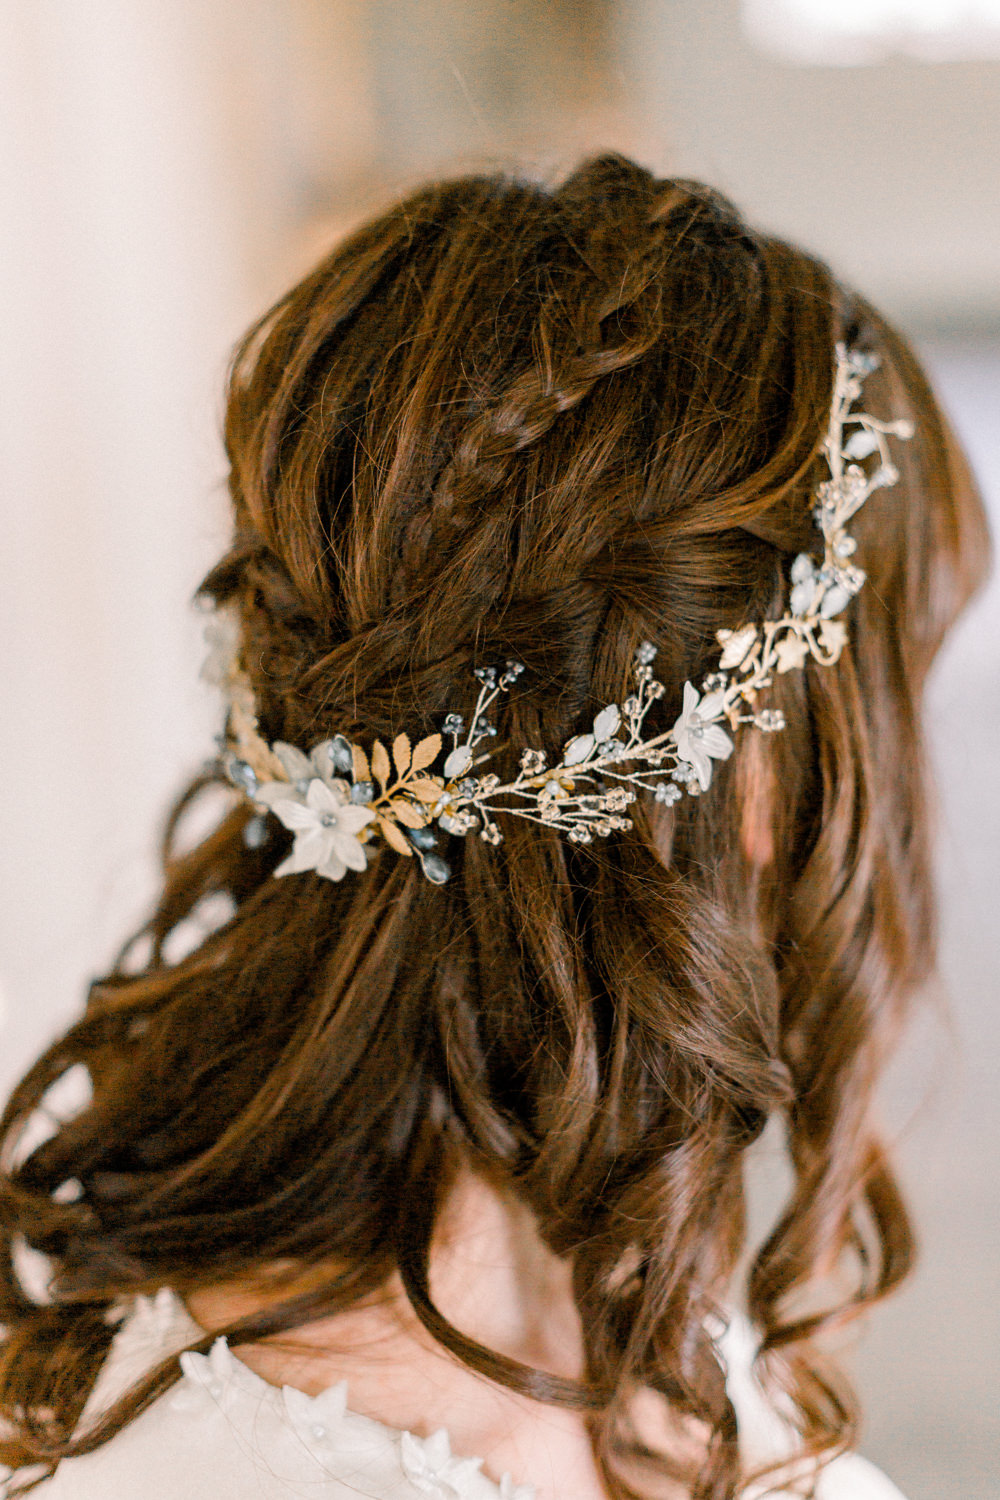 Bride Bridal Accessory Circlet Gold Leaf Hair Plaits Braids Style Up Do Winter Blue Barn Wedding Ideas Joanna Briggs Photography